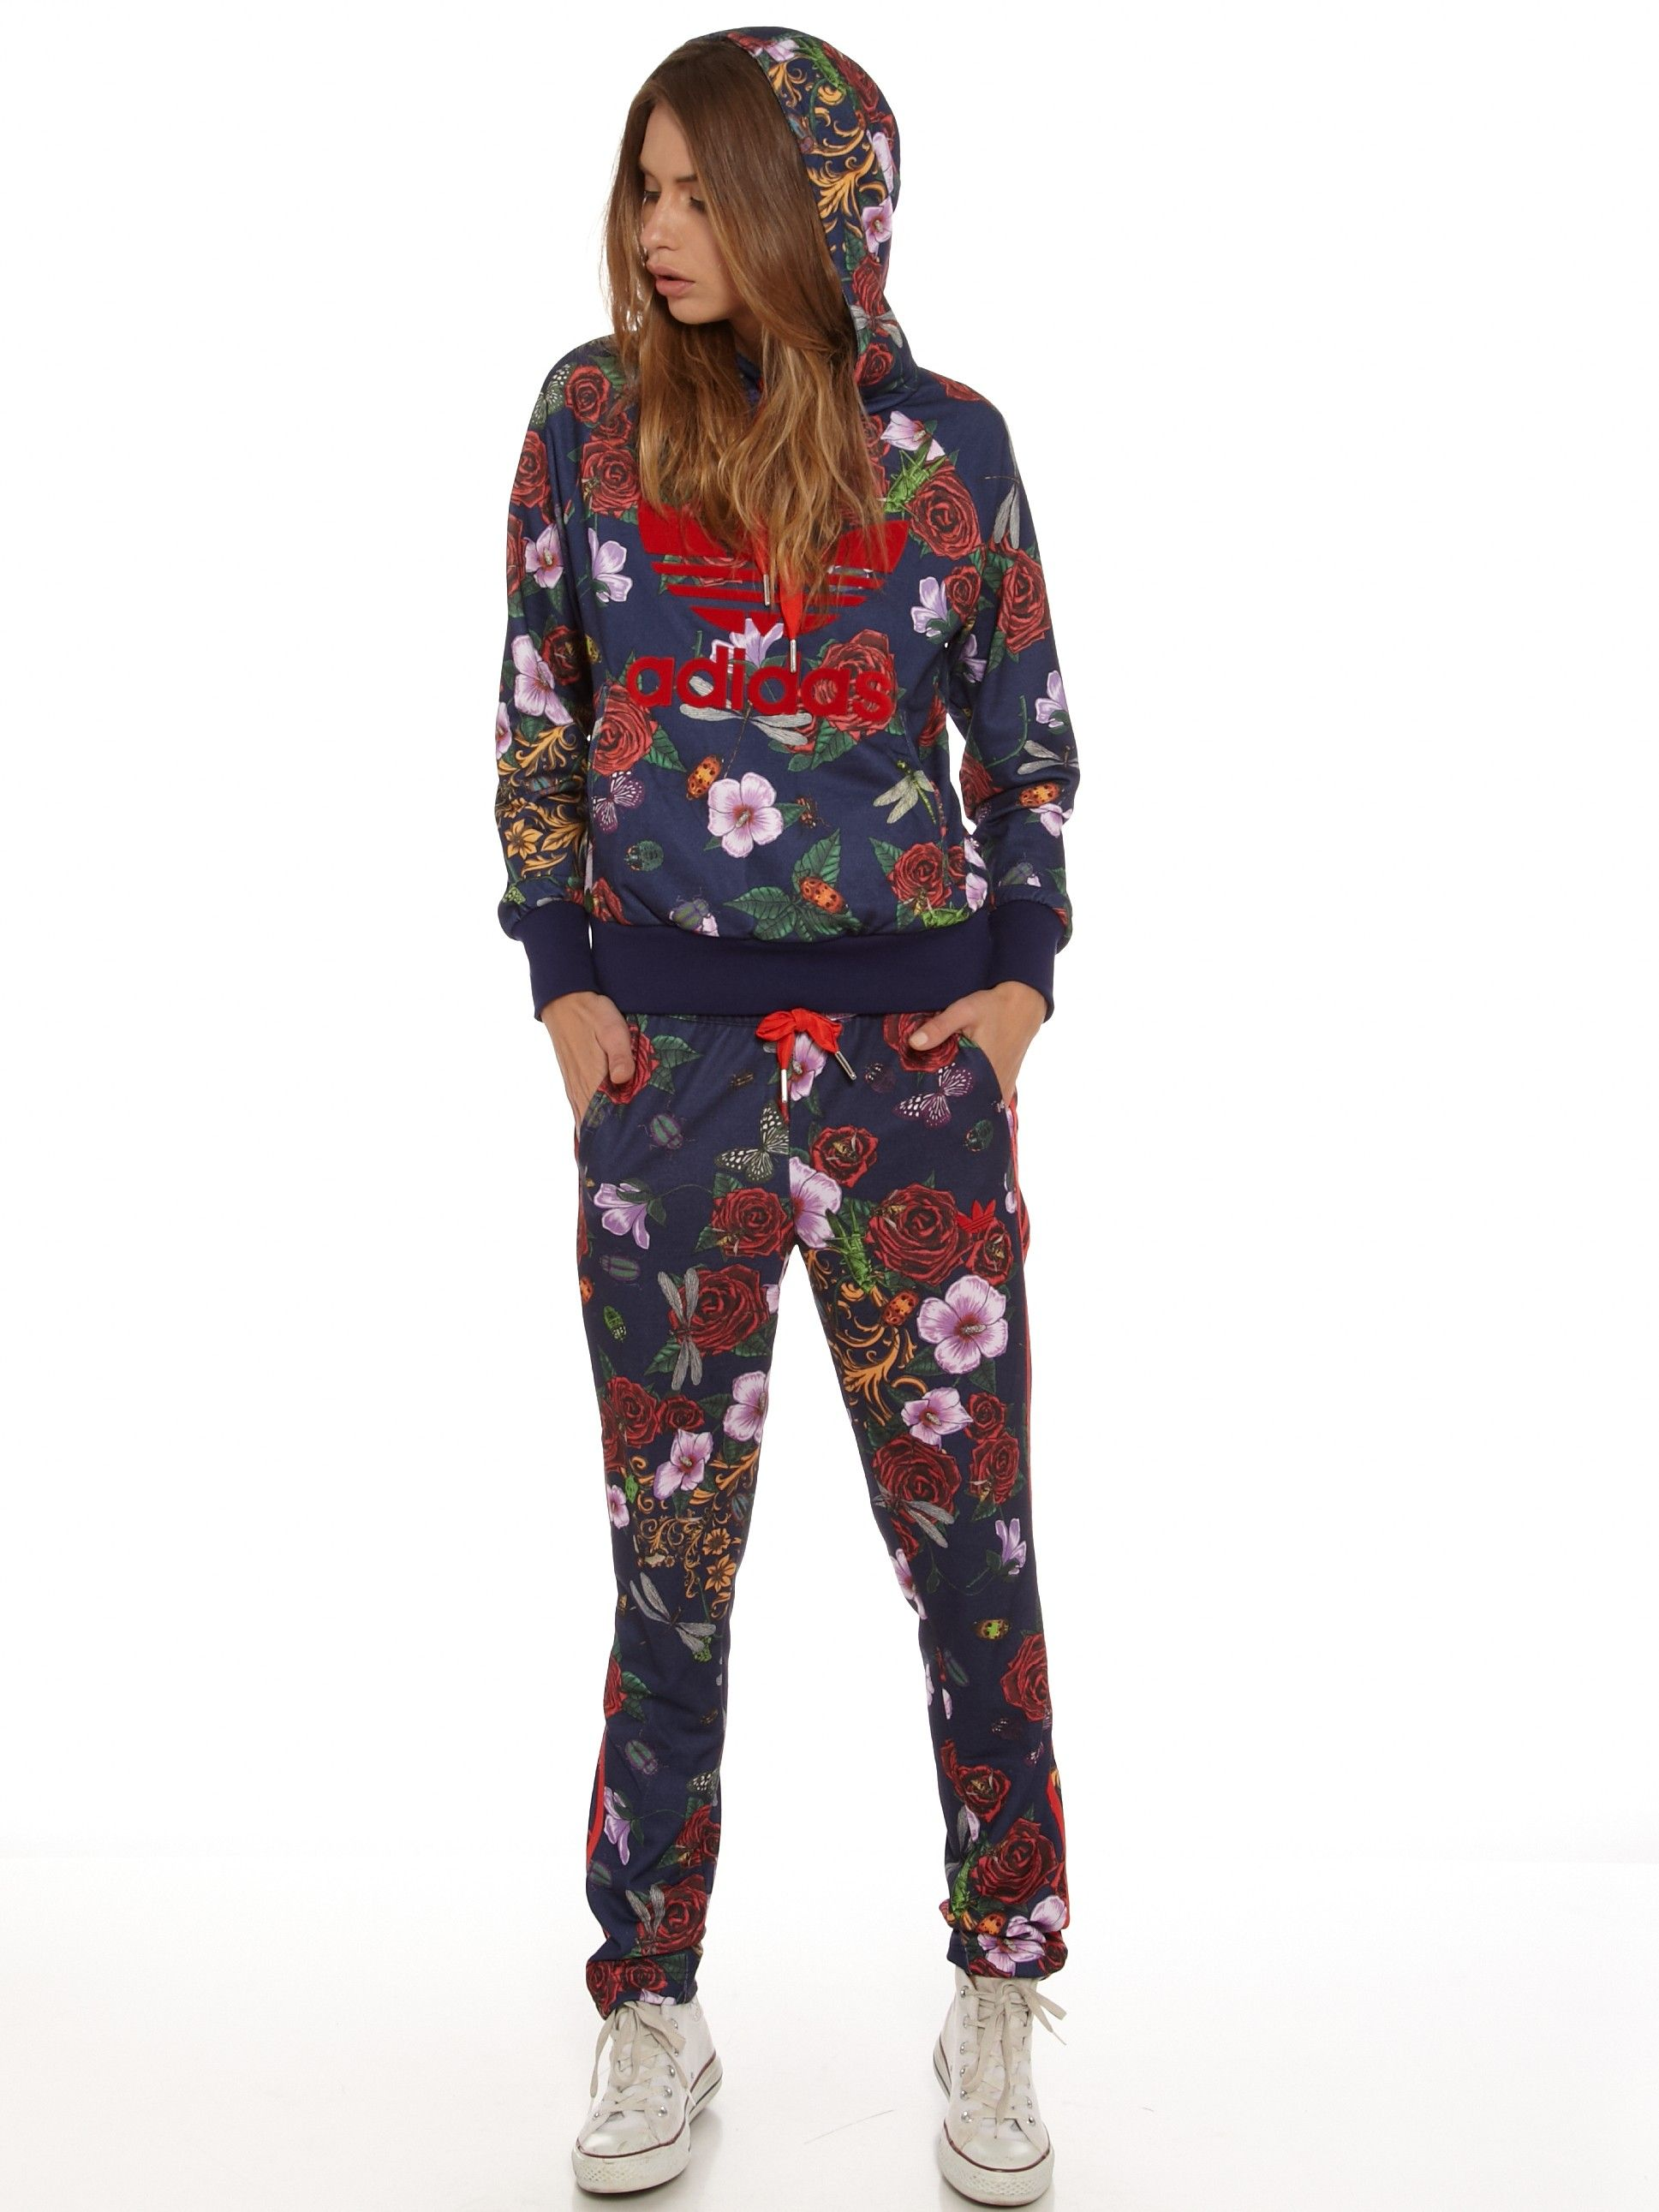 59acd674c7b4 Rita Ora Roses Trackpants in Baroque Floral Print